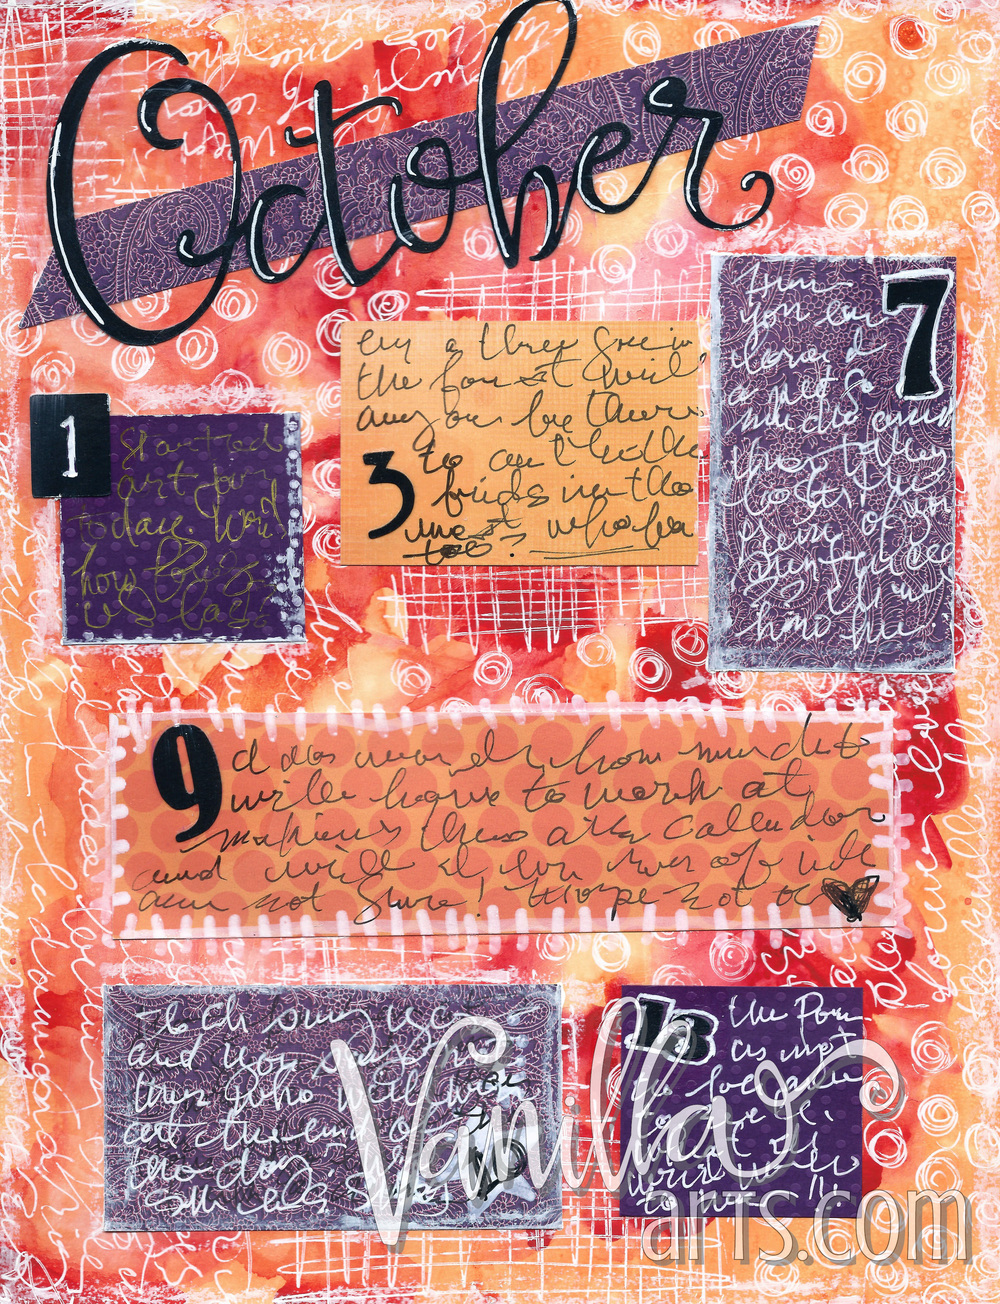 Calendare! Art journal layouts for beginning crafters | VanillaArts.com